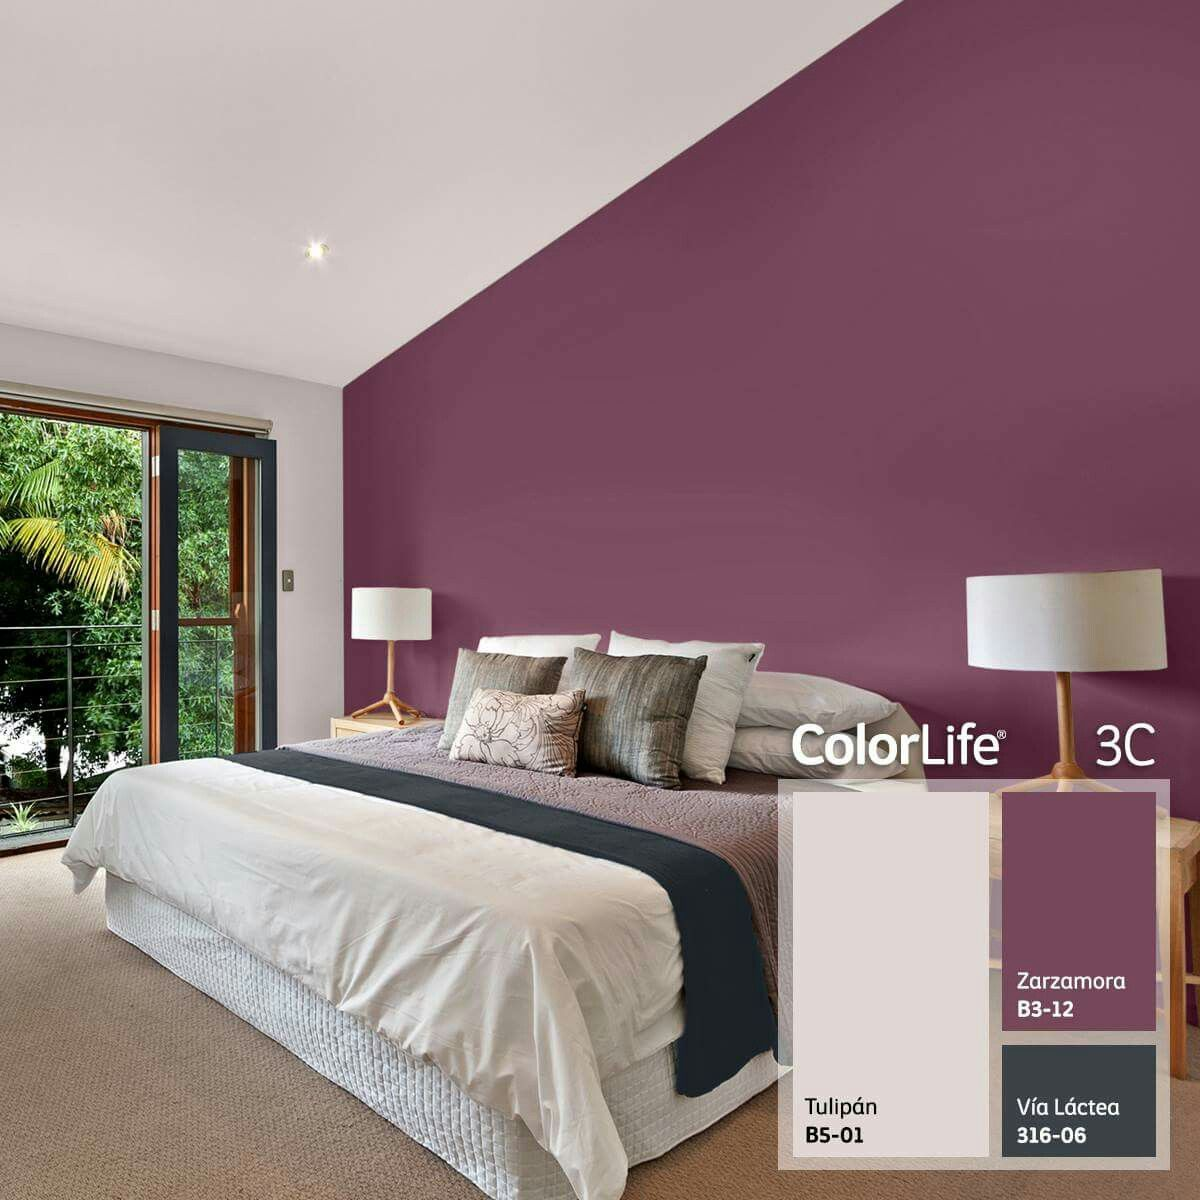 Frmula 3c comex color pinterest feng shui room and bedrooms frmula 3c comex nvjuhfo Image collections